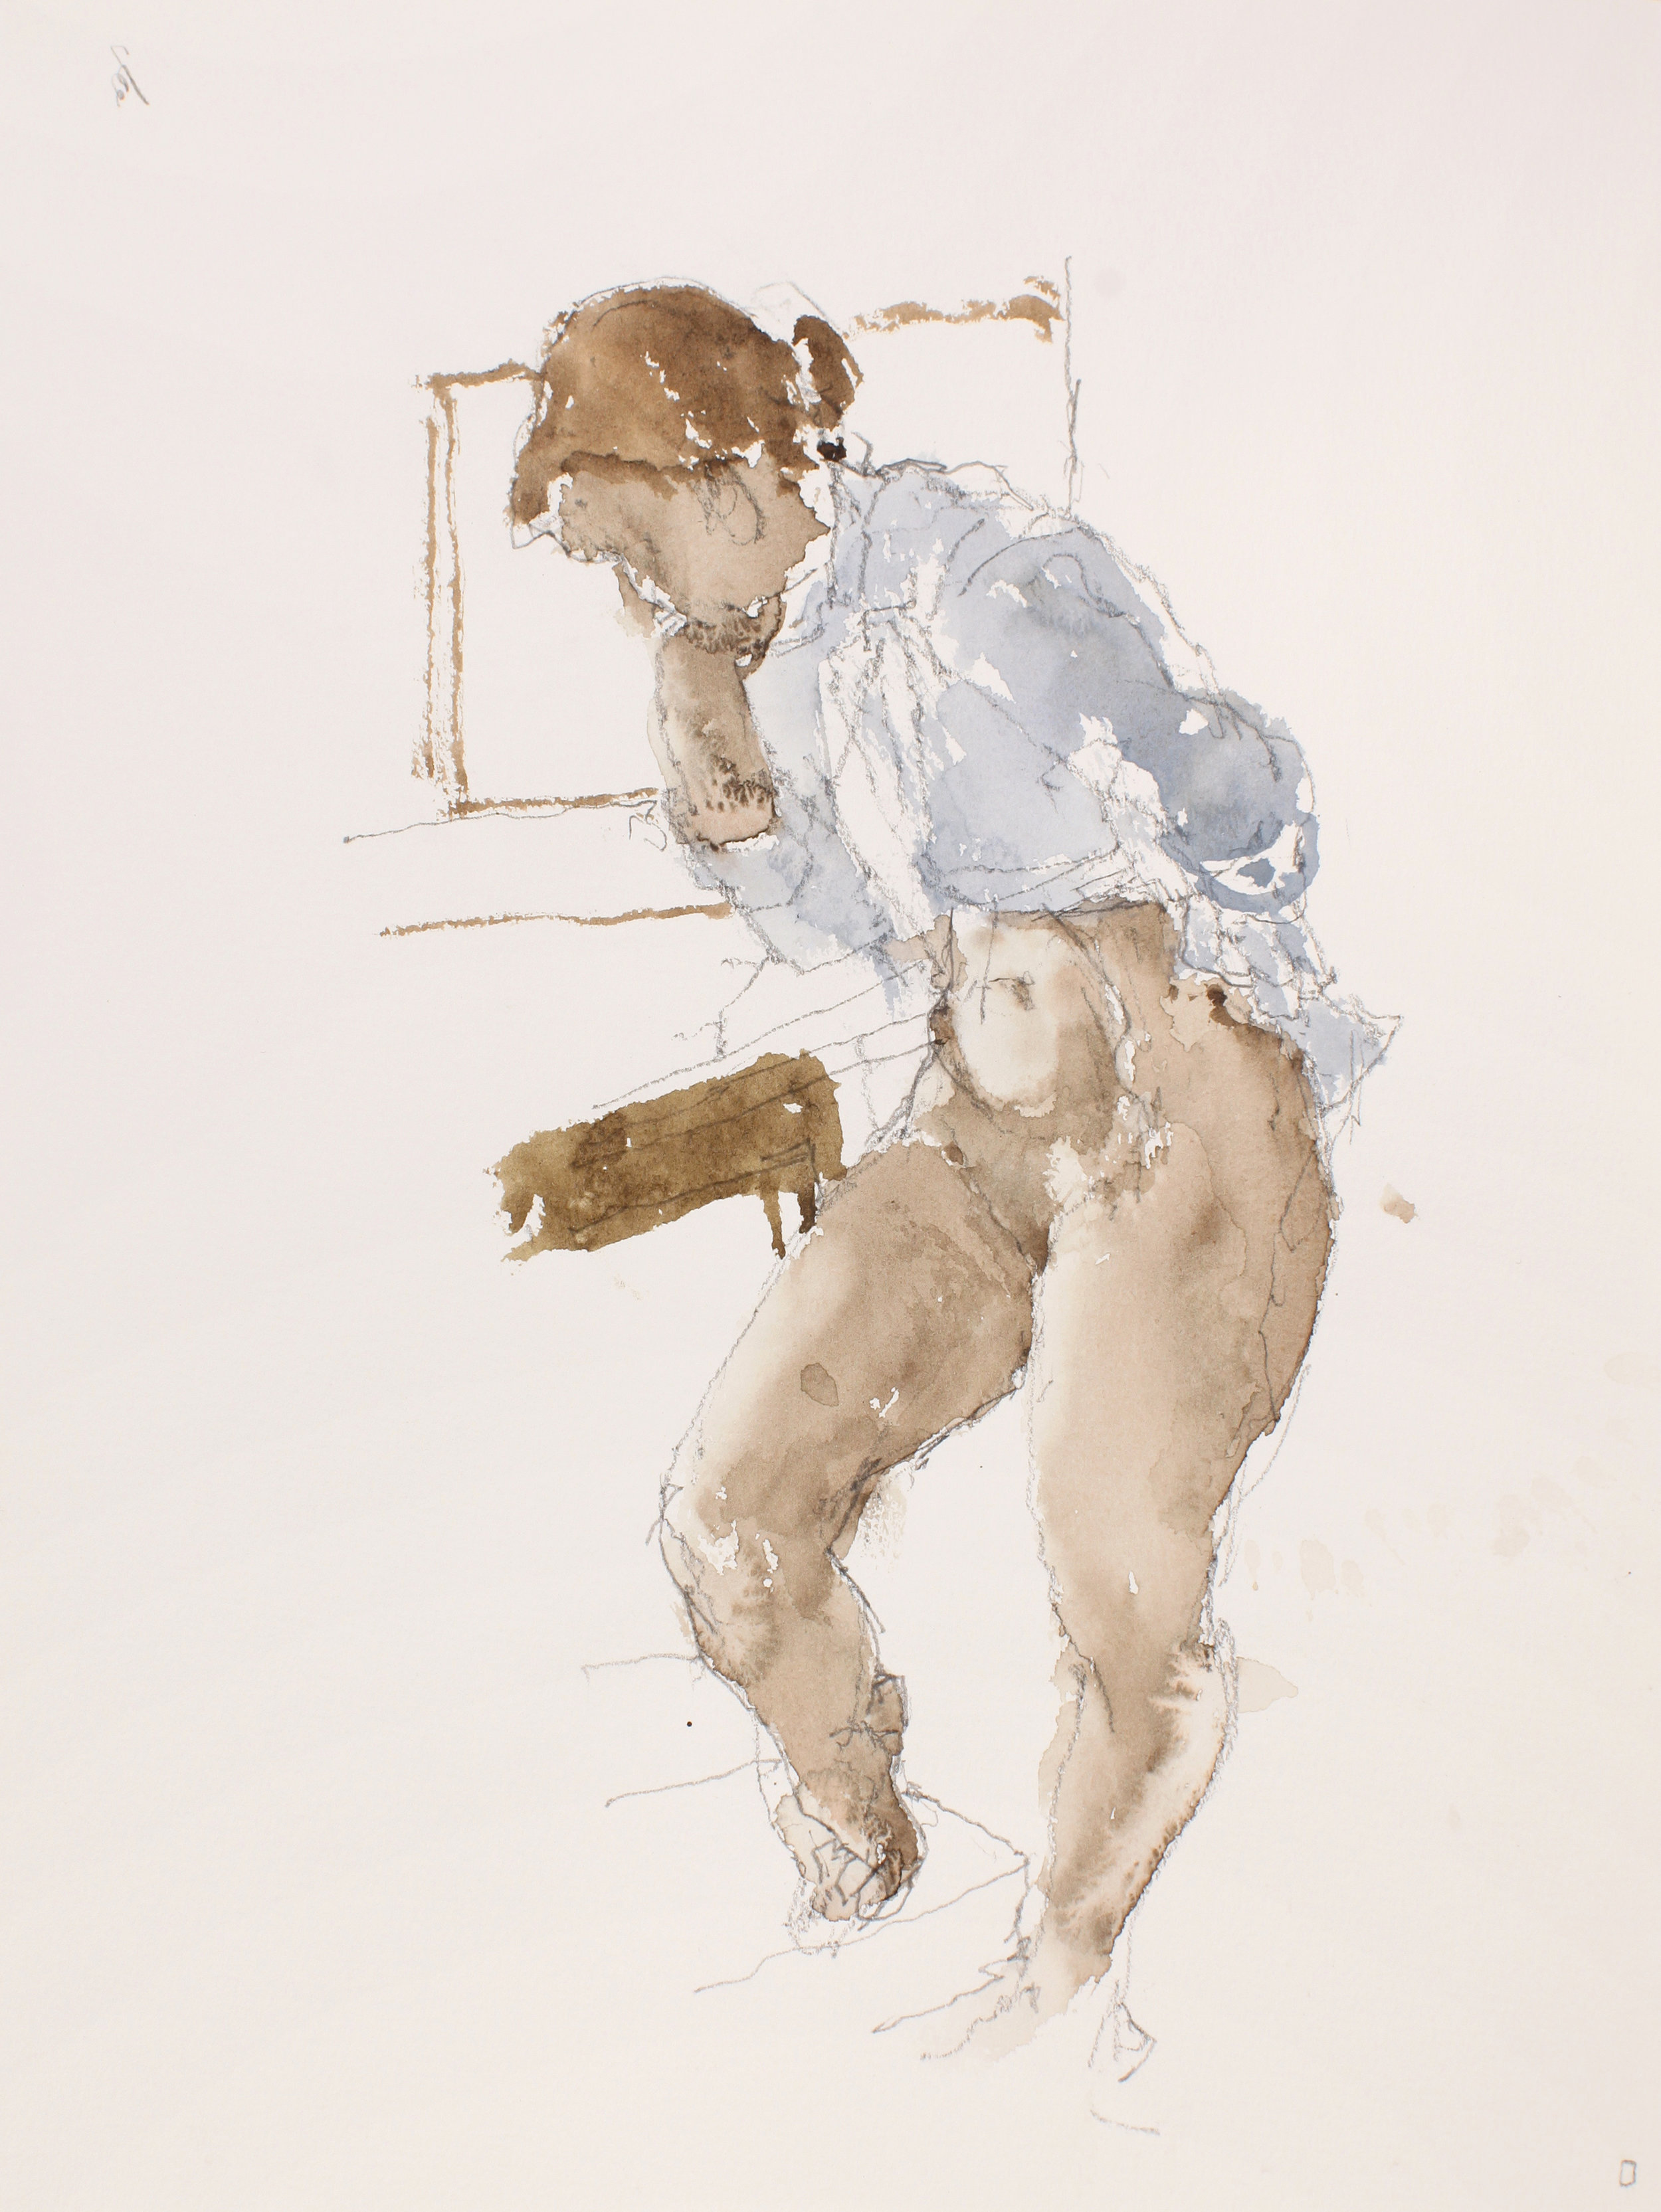 2006_Standing_Nude_with_Blue_Shirt_watercolour_and_pencil_on_paper_15x11in_WPF485.jpg